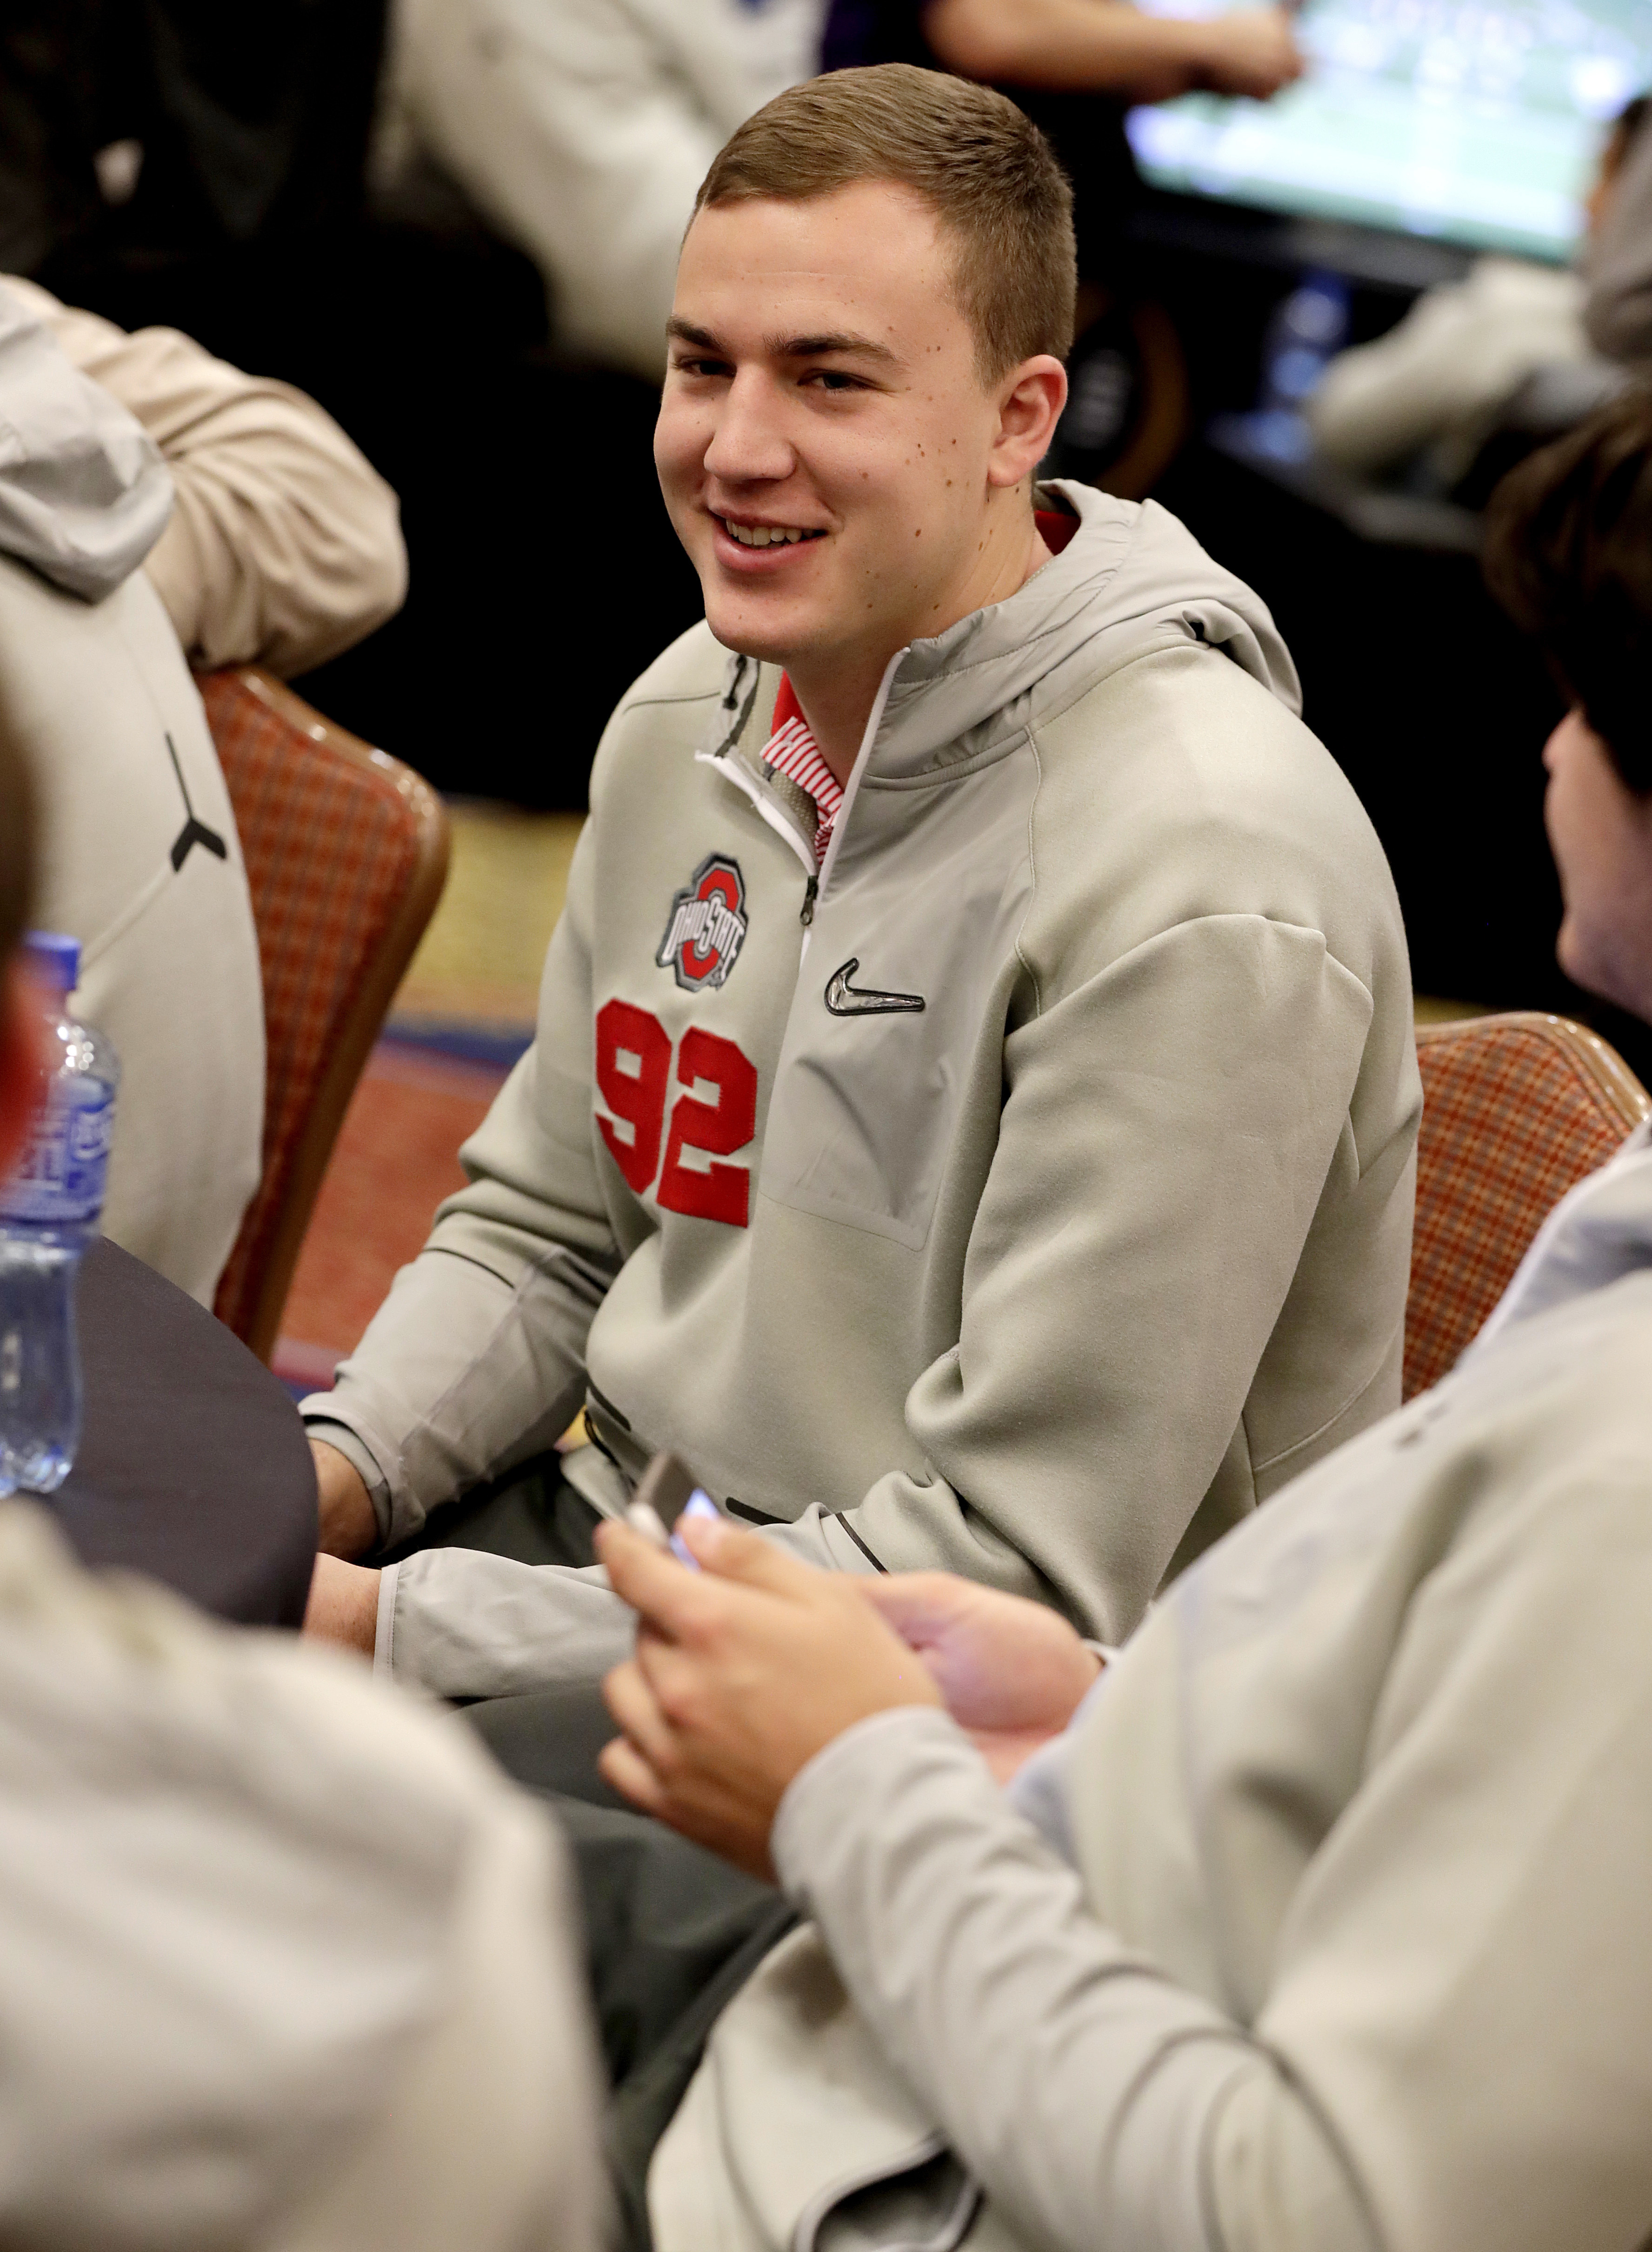 Ohio State's Tyler Durbin smiles during the Fiesta Bowl NCAA college football game media day, Thursday, Dec. 29, 2016, in Scottsdale, Ariz. Ohio State will face Clemson in the Fiesta Bowl on Dec. 31, 2016. (AP Photo/Matt York)